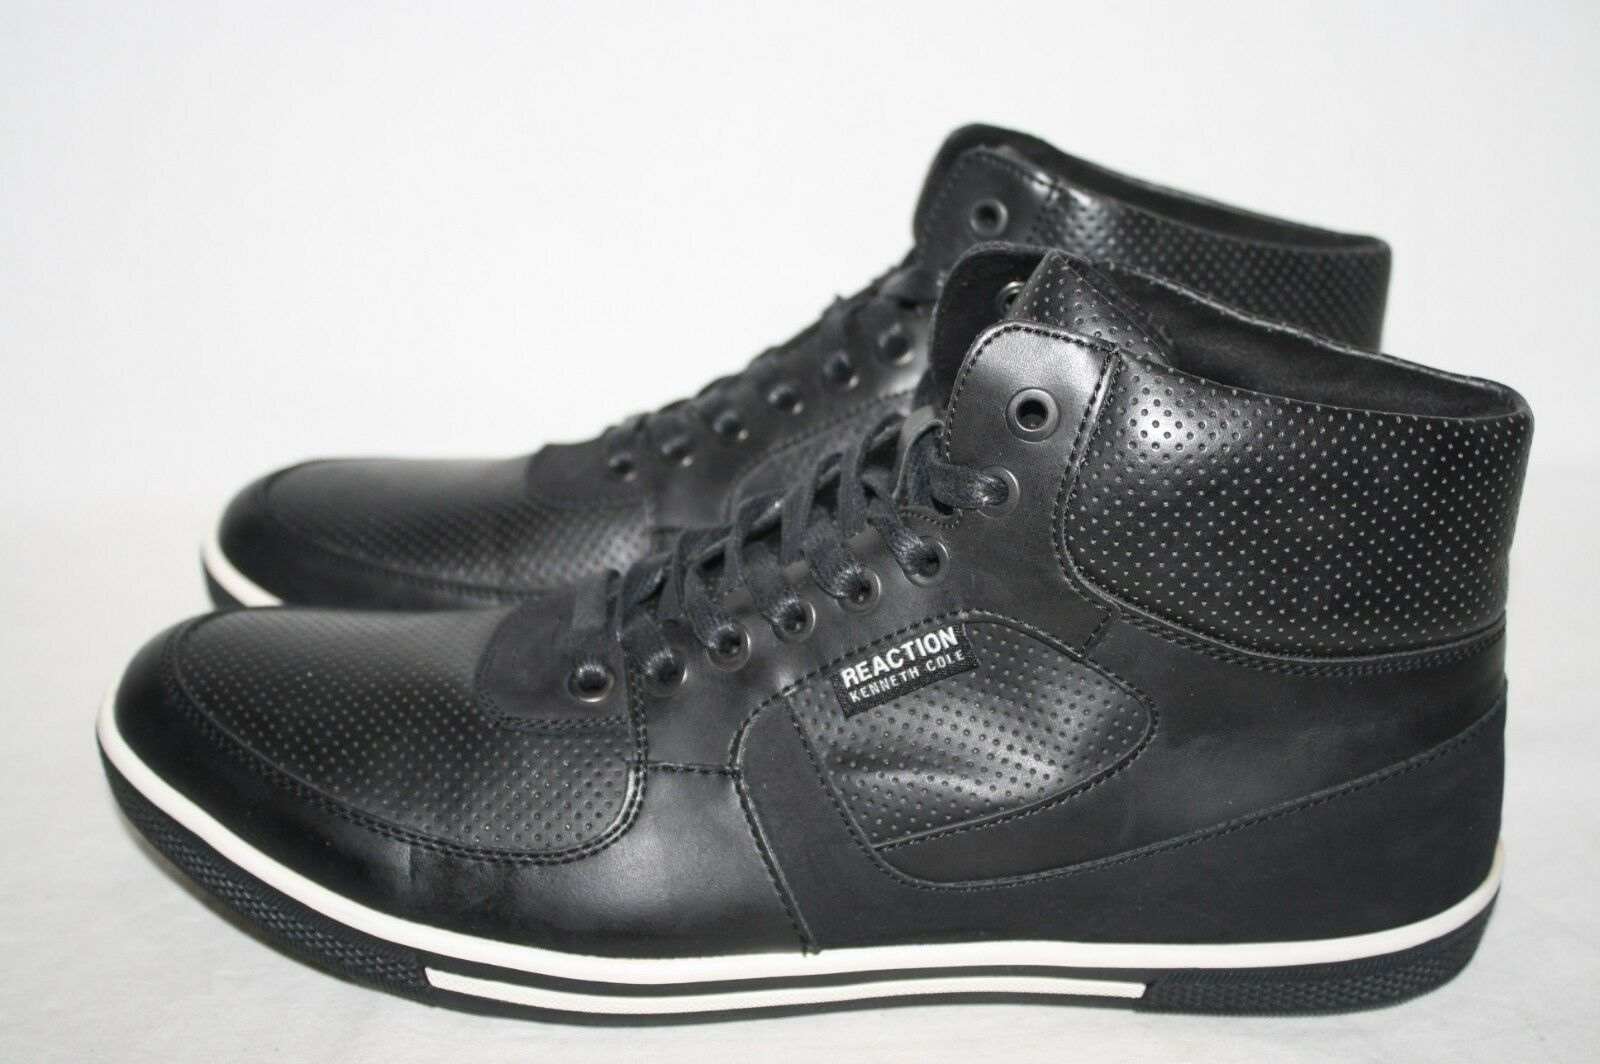 MENS KENNETH COLE REACTION HIGHEST CROWN SHOES - SEE LISTING (2312)